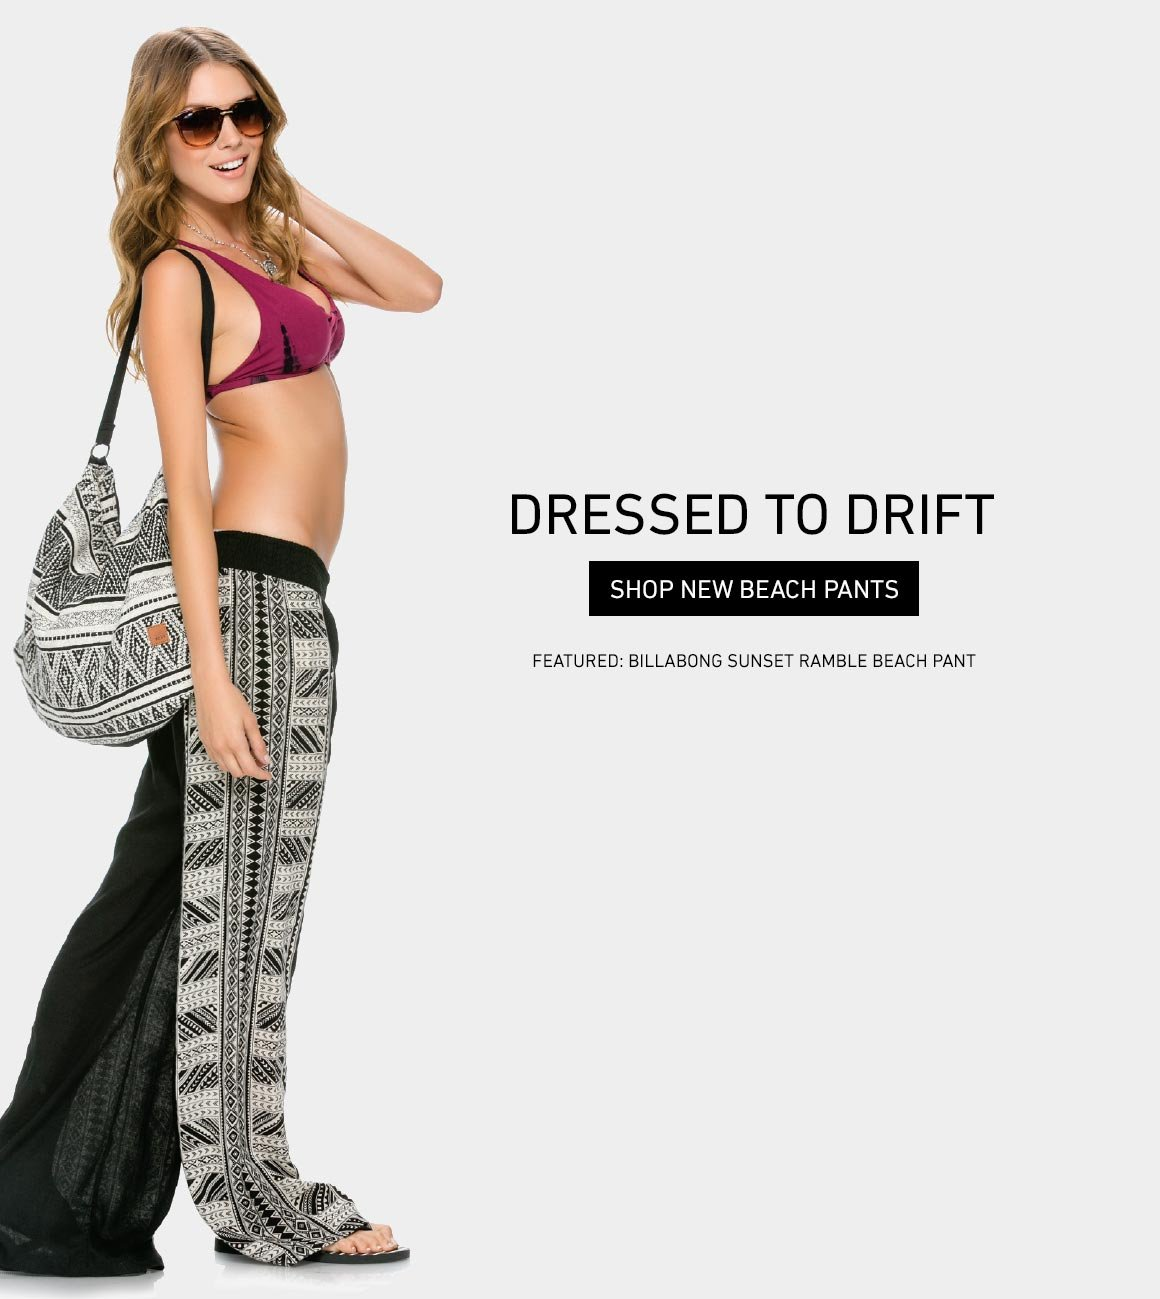 Dressed To Drift: New Beach Pants